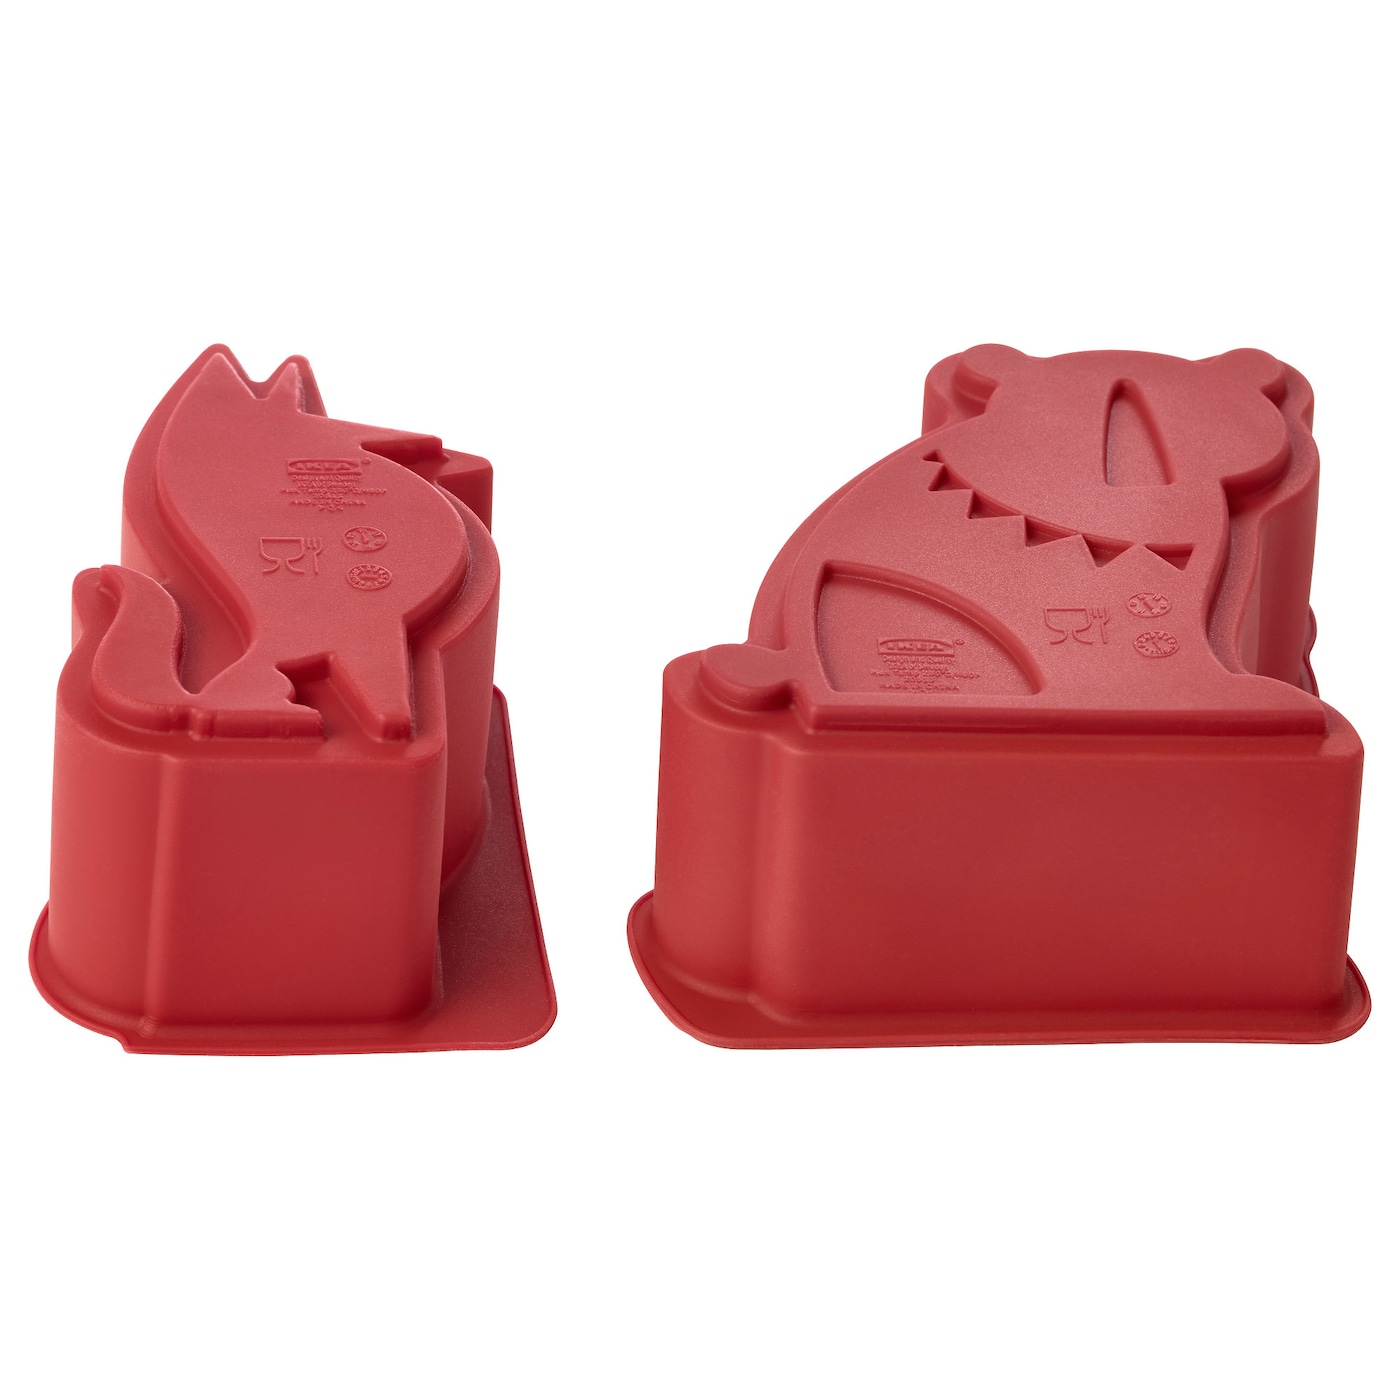 IKEA BAKGLAD baking mould, set of 2 The silicone makes the pastry release easily from the moulds.